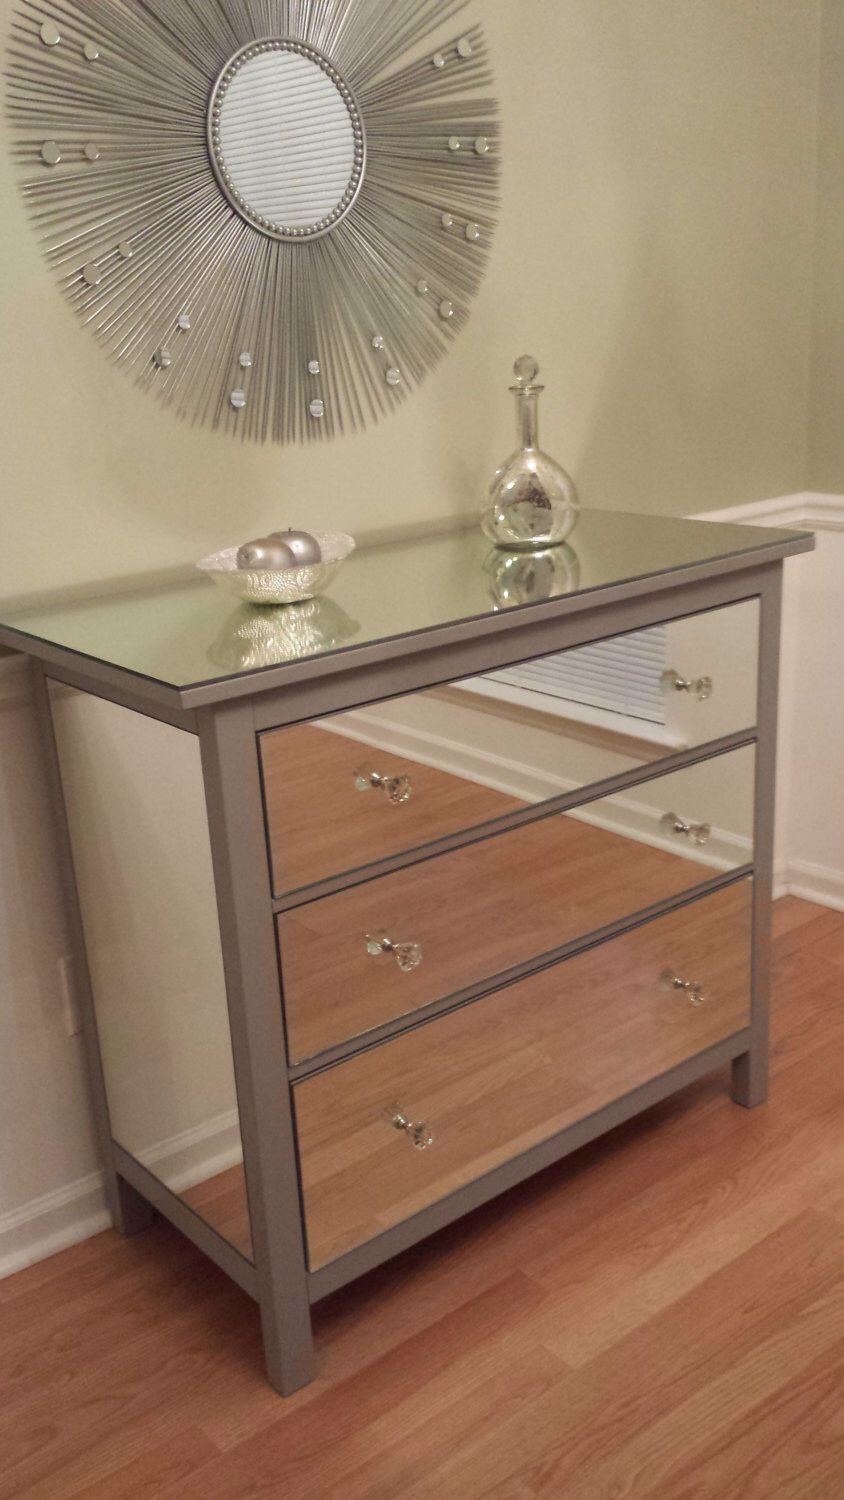 Mirrored Dresser Silver Upcycled Ikea 3 Drawer Mirror By Mirroredjewels On Etsy Https